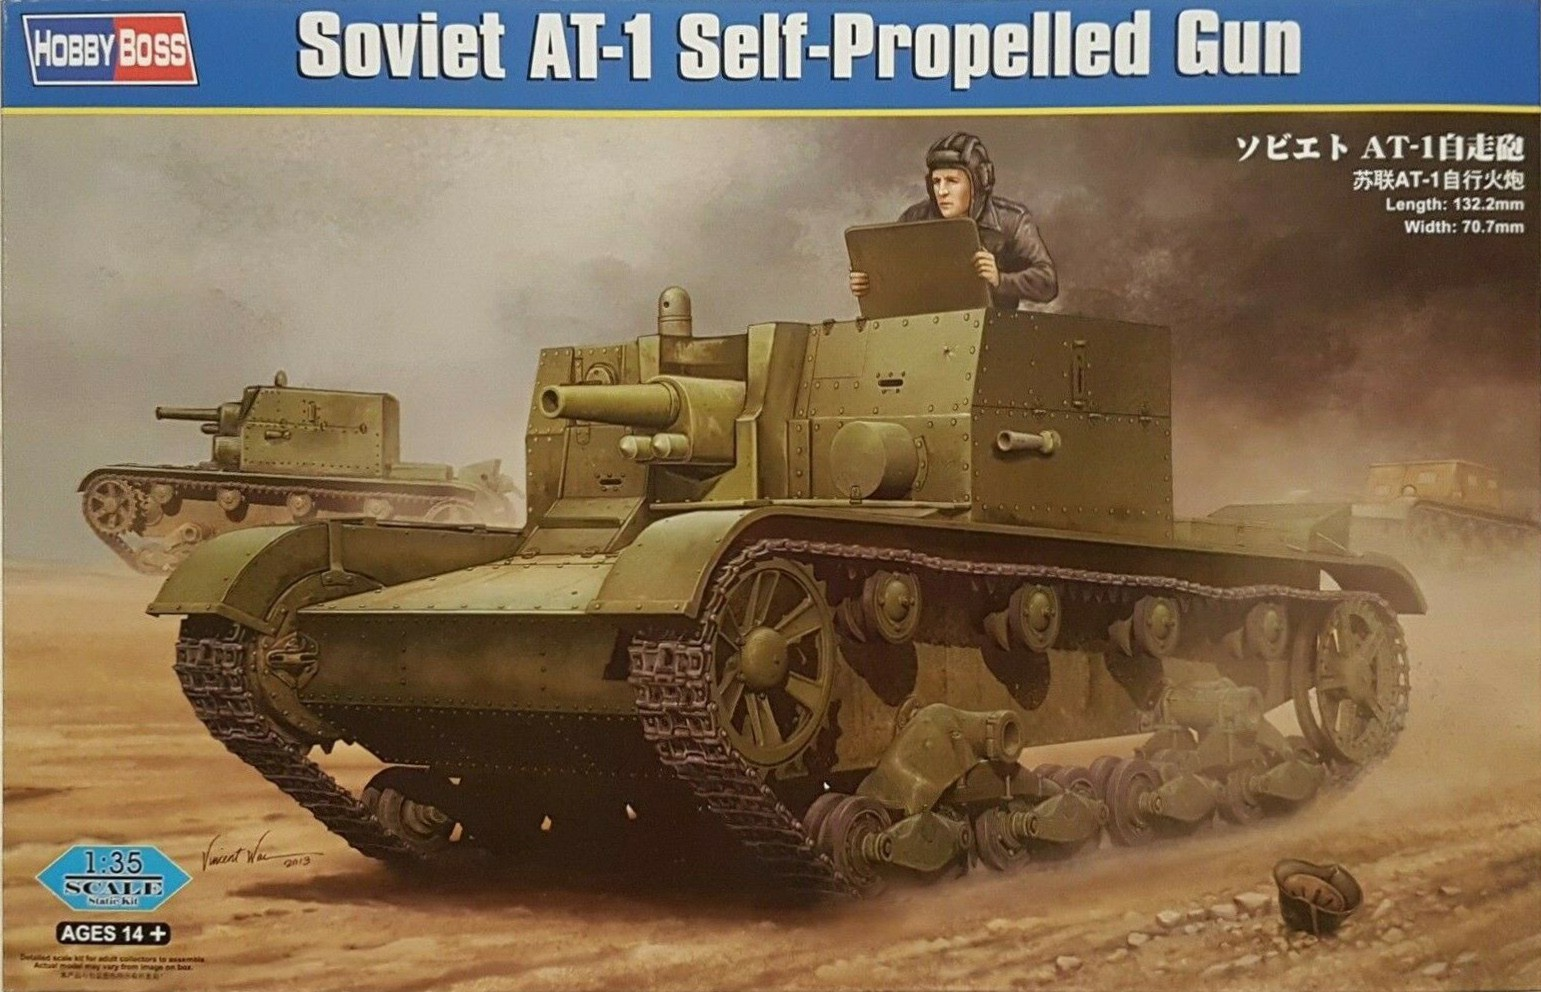 82499 Soviet AT-1 Self-Propelled Gun Image